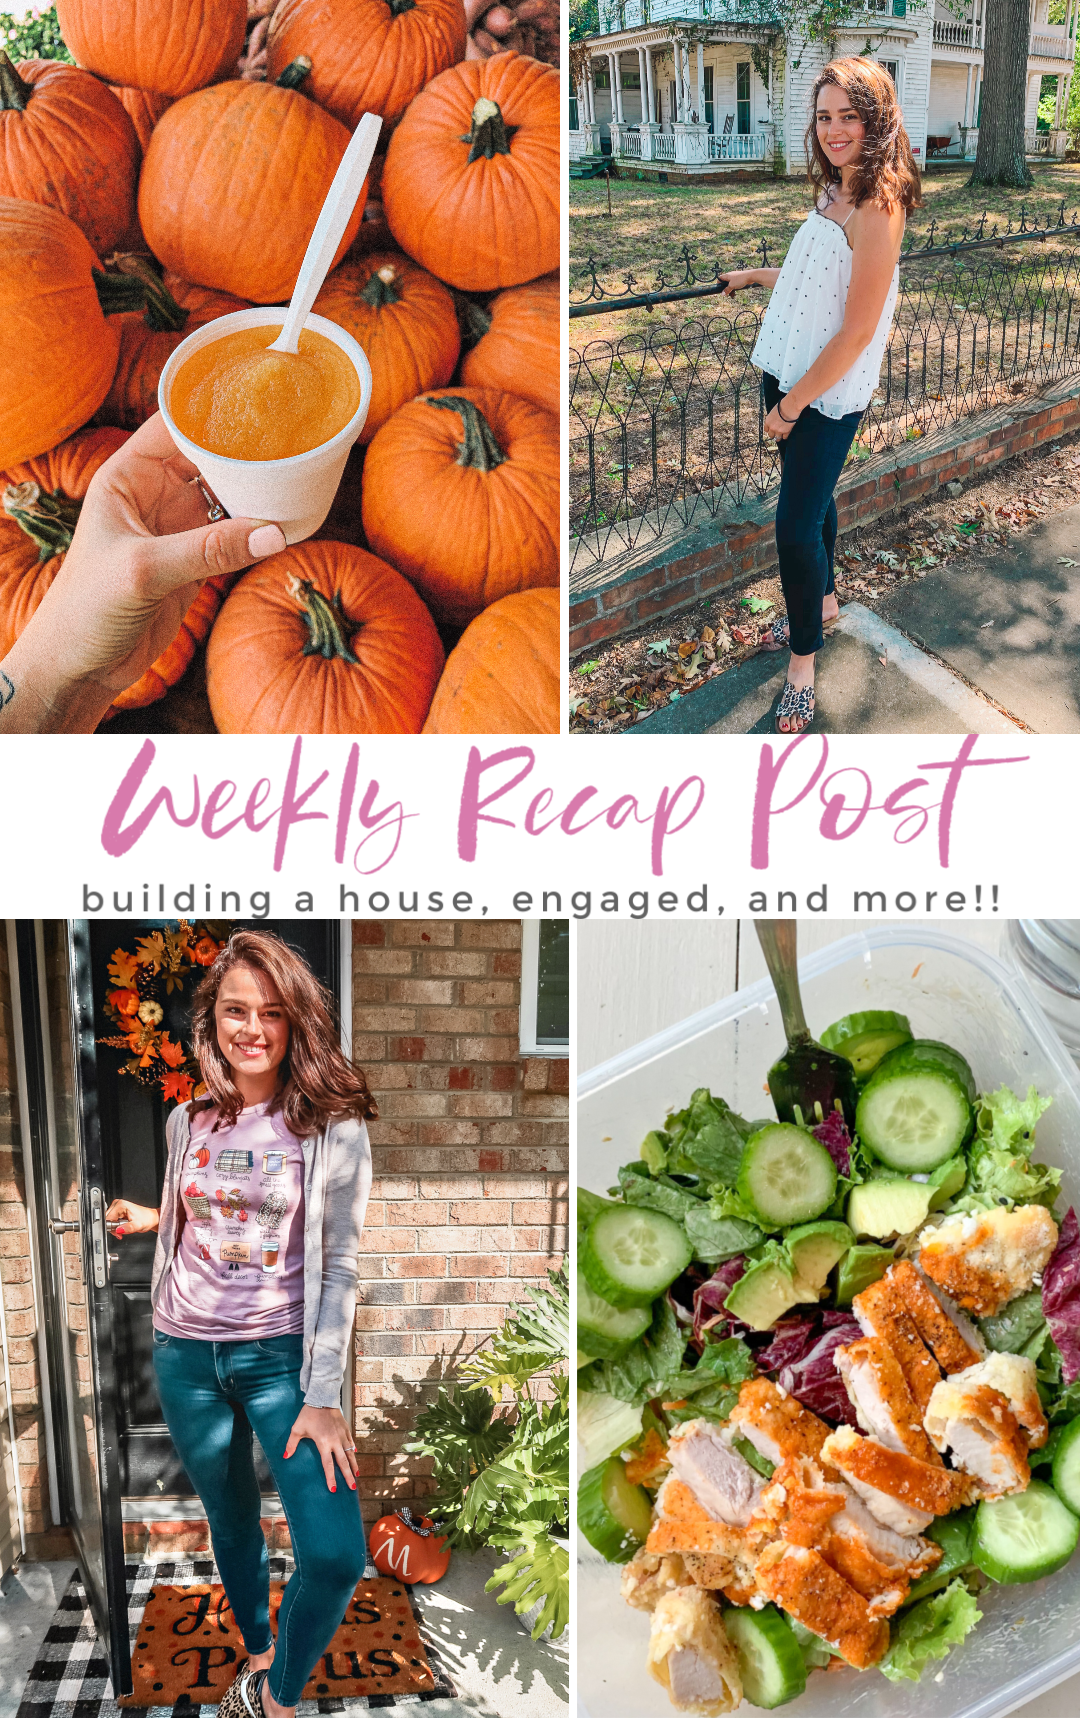 fall, Engagement, moving home, building, fort mill, sc, masons bend, moving, building, home design, north Carolina, fielding homes, moving blog DAY ONE WHOLE30, whole30 diet, whole30 plan, whole30 results, what whole30 did for me, my whole30 journey, 30 days of whole30 , what I ate, target, decor, shopping, black gingham, plaid, wreath, target style, blog, South Carolina, September, first day of fall, home decor bush n vine, farmers market, fall, pumpkin patch, love